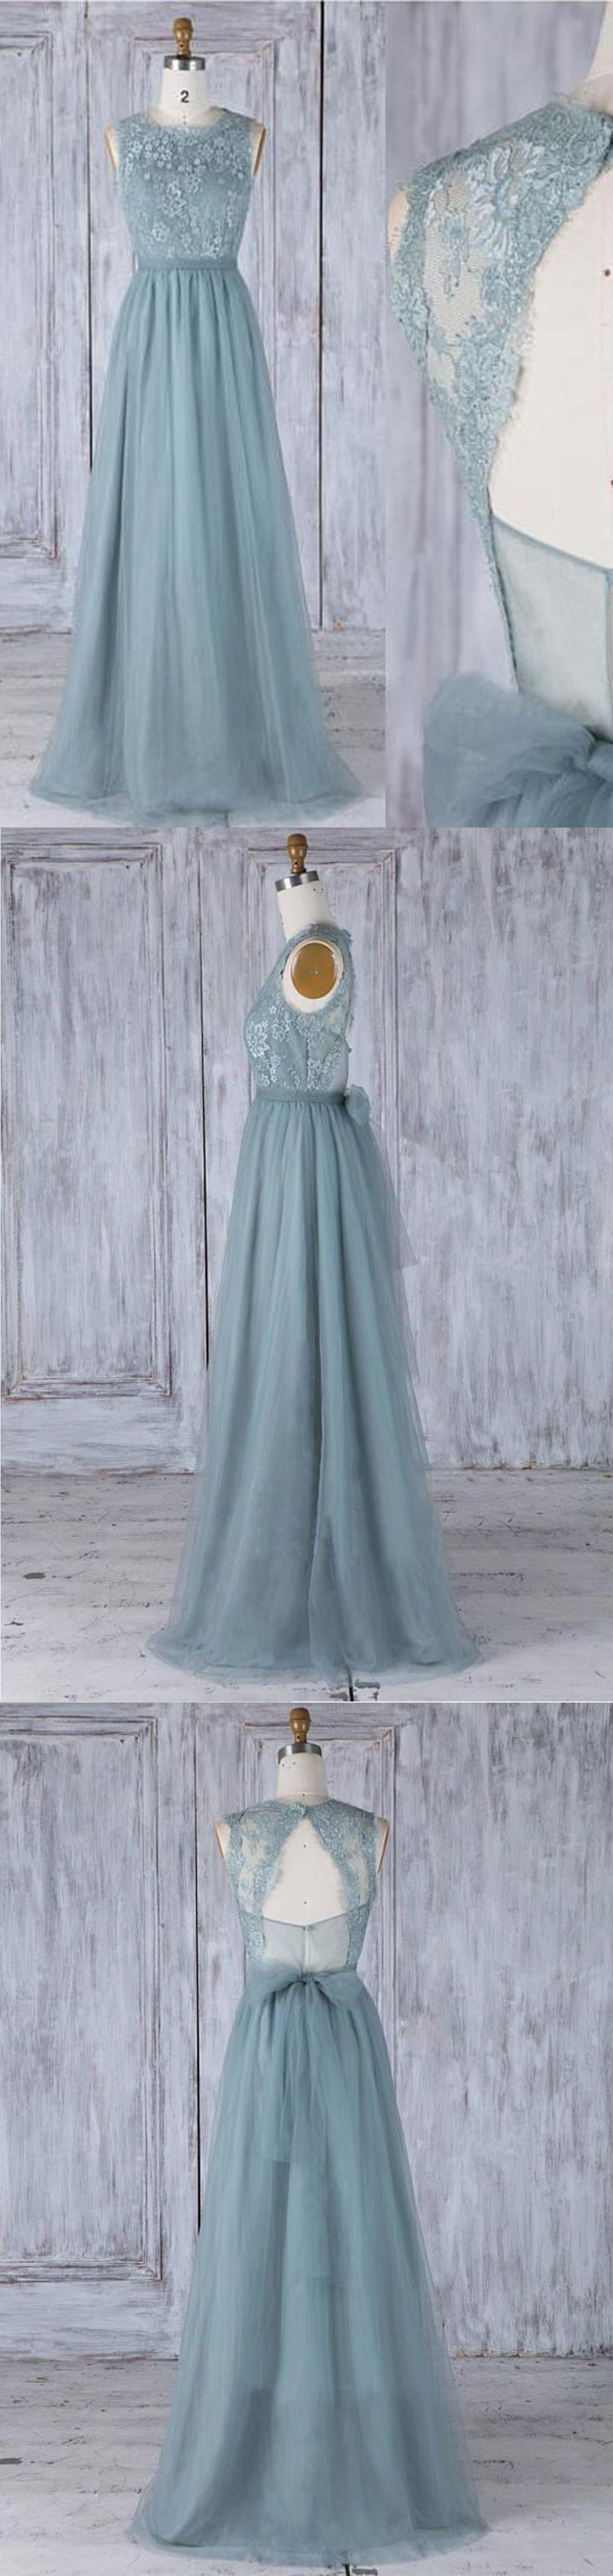 Dark green tulle long open back lace fashion prom dress with bowknot